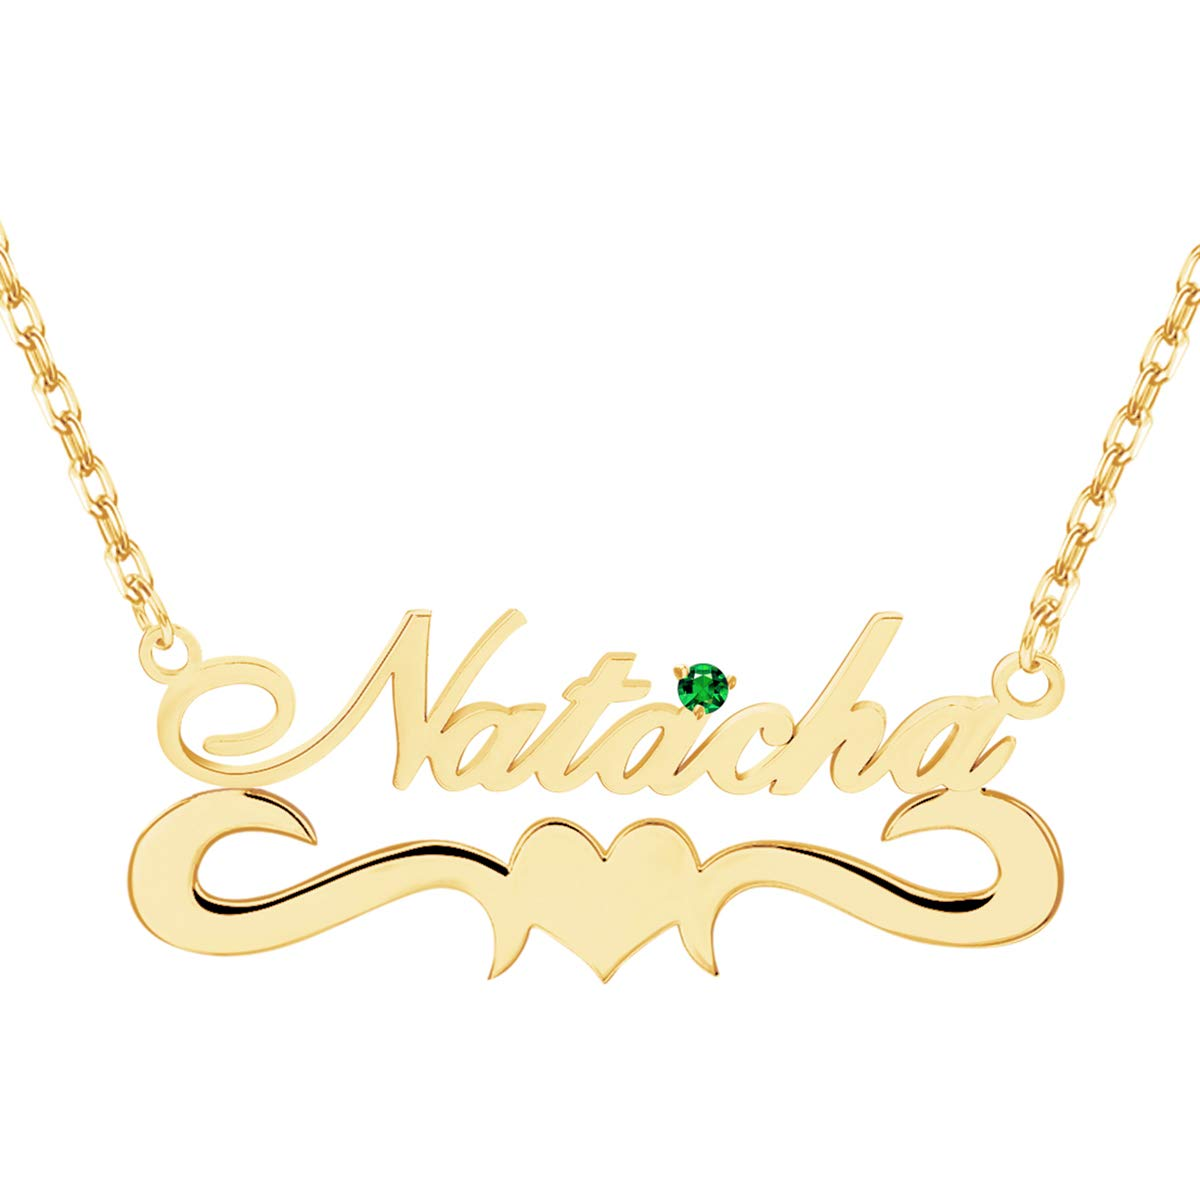 Personalized Name Necklace 18K Gold Plated Nameplate Jewelry Girls With Brithstone